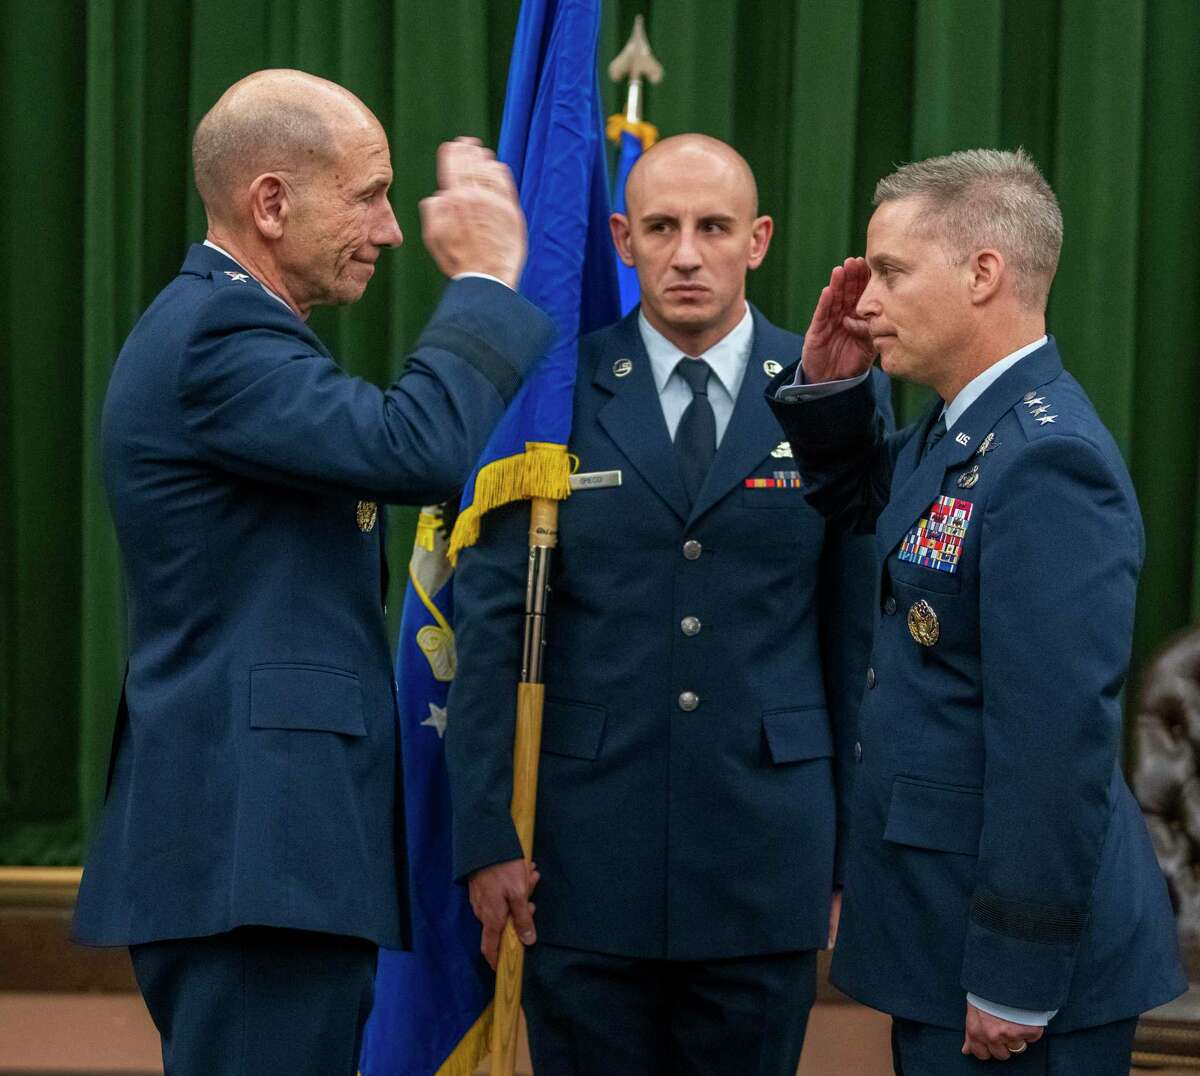 Gen. Mike Holmes, commander of the Air Combat Command , left, salutes newly-promoted Lt. Gen. Timothy D. Haugh at a ceremony Friday at Joint Base San Antonio-Lackland to furl the flags of the 24th and 25th air forces, which are now combined in the new 16th Air Force in charge of intelligence and cyberwarfare.